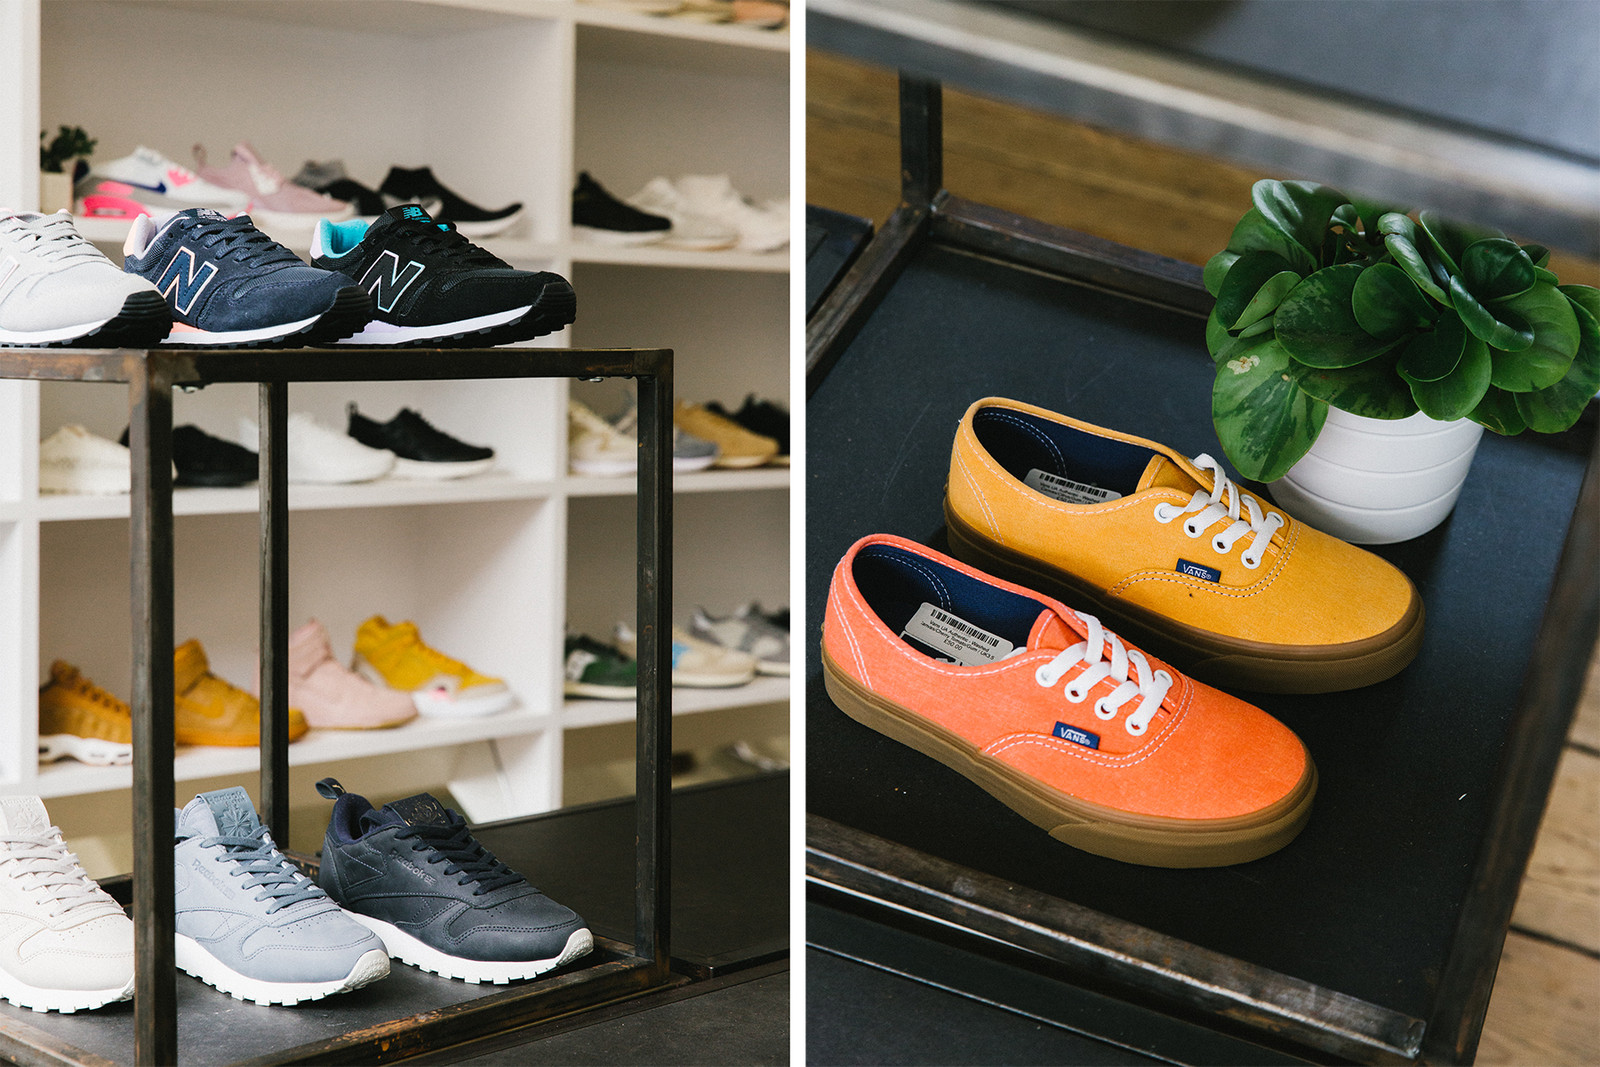 Sneaker 101 with Pam Pam London nike adidas saucony vans